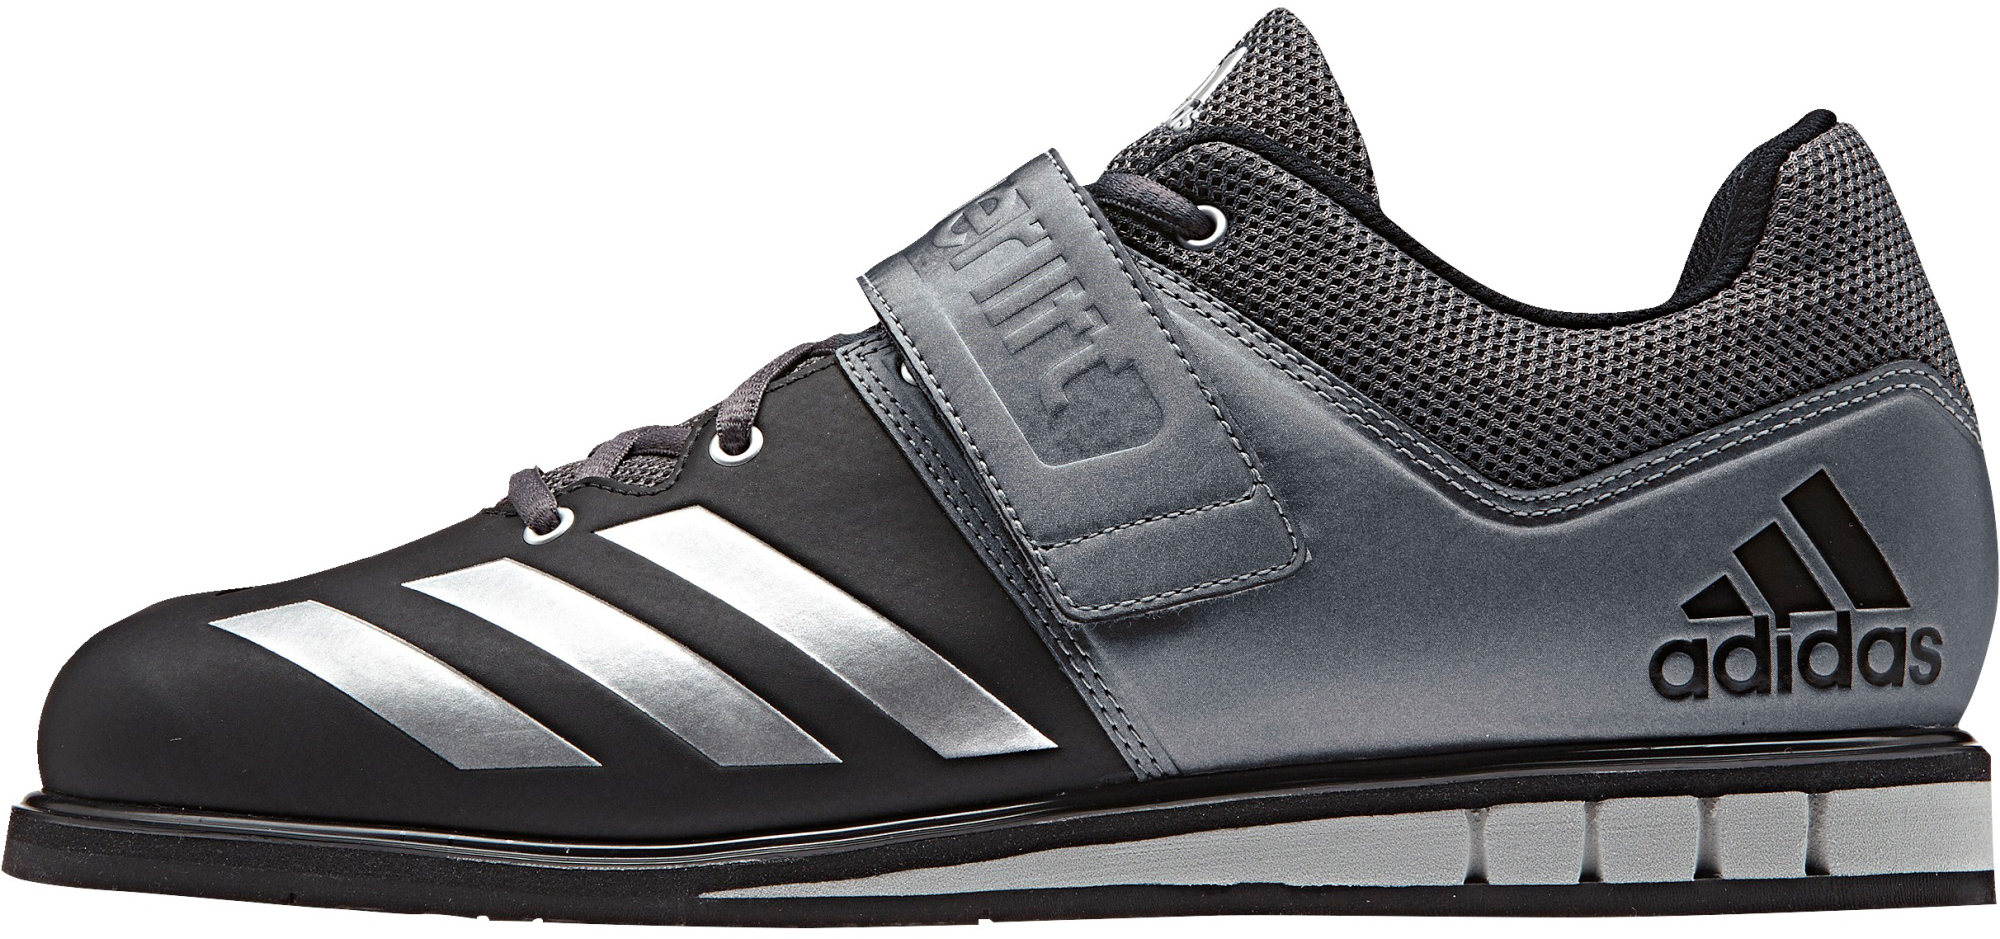 adidas powerlift 3 nz